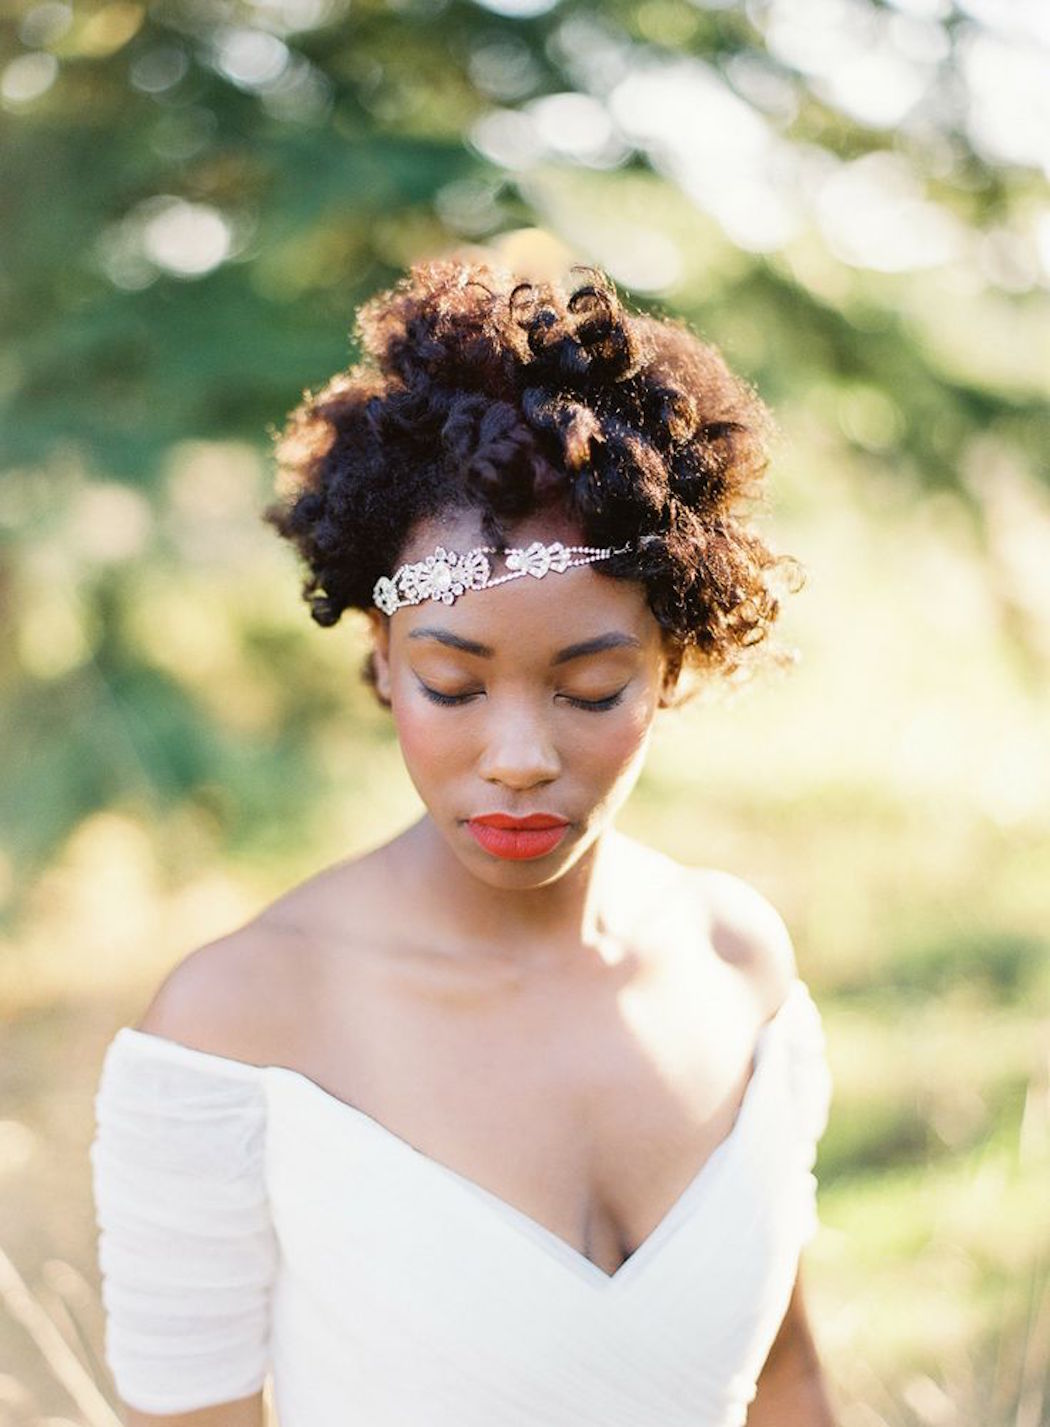 Fall Wedding Hairstyles For Medium Length Hair | Curls ...